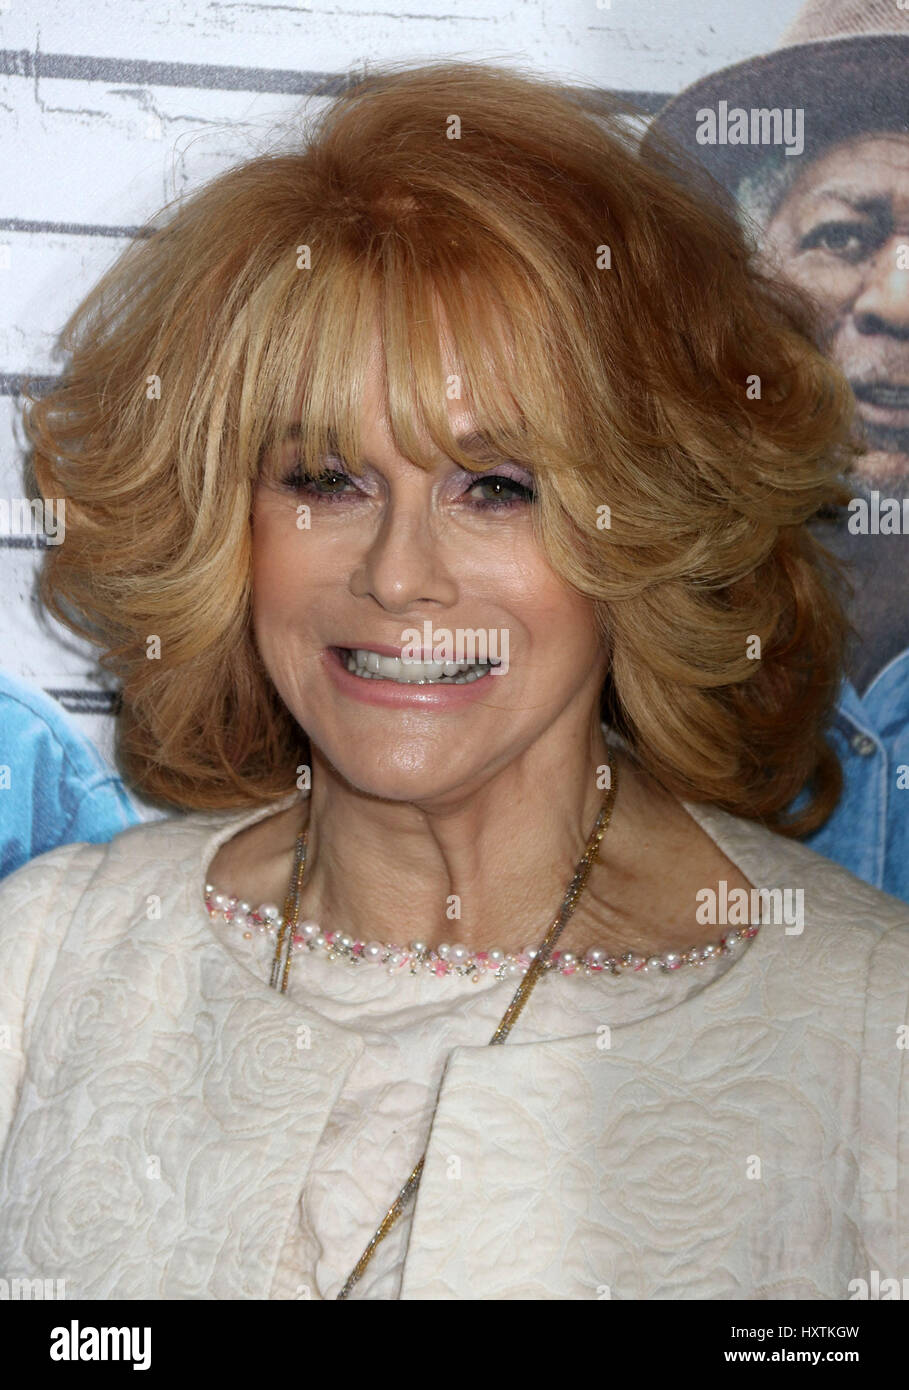 New York, New York, USA. 30th Mar, 2017. Actress ANN-MARGRET attends 'Going In Style' New York premiere - Stock Image